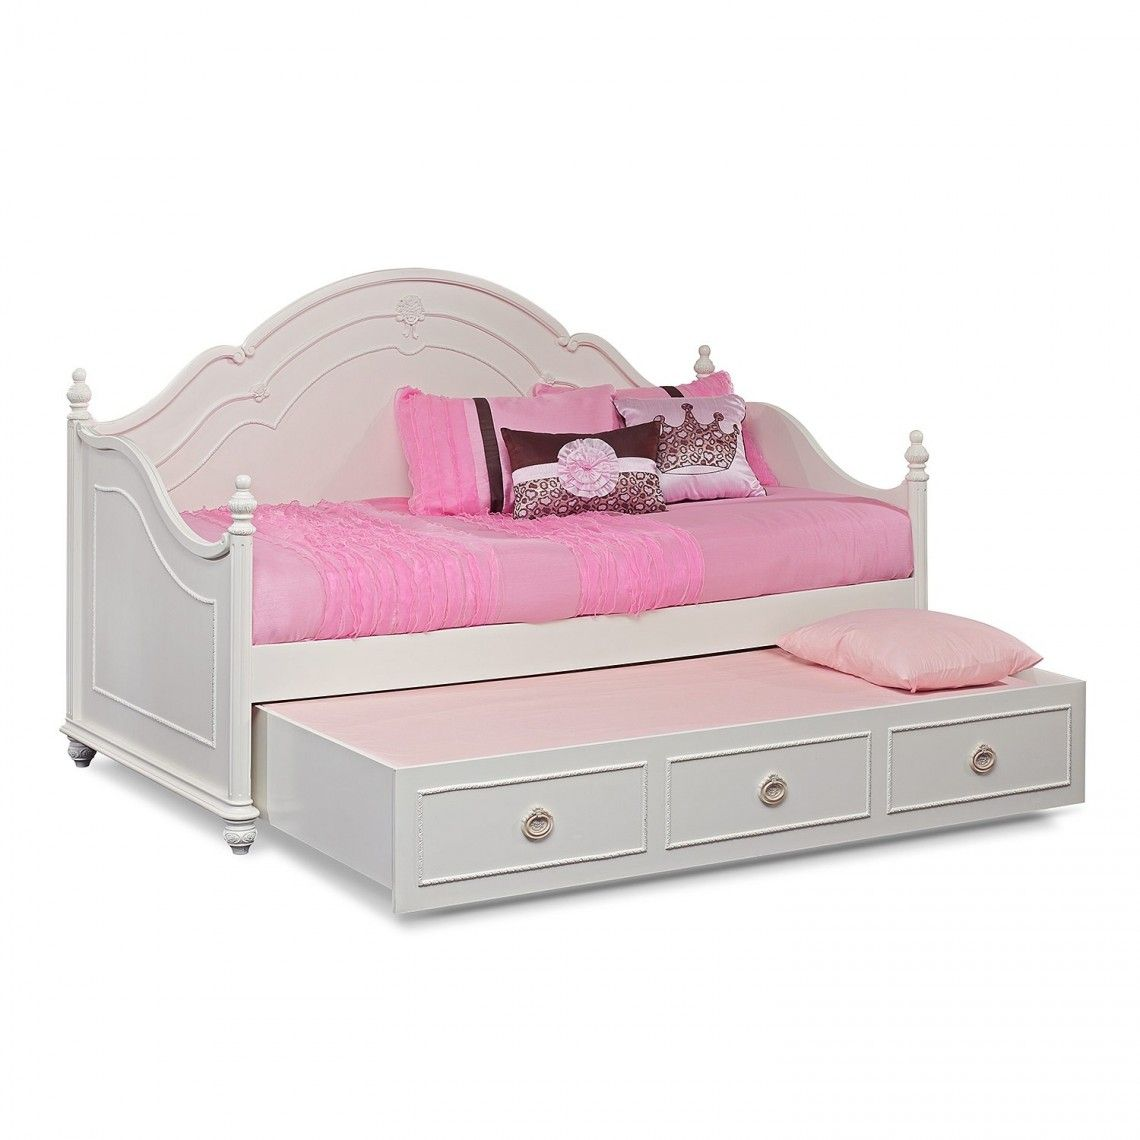 Bedroom Furniture White Polished Kid Trundle Daybed With